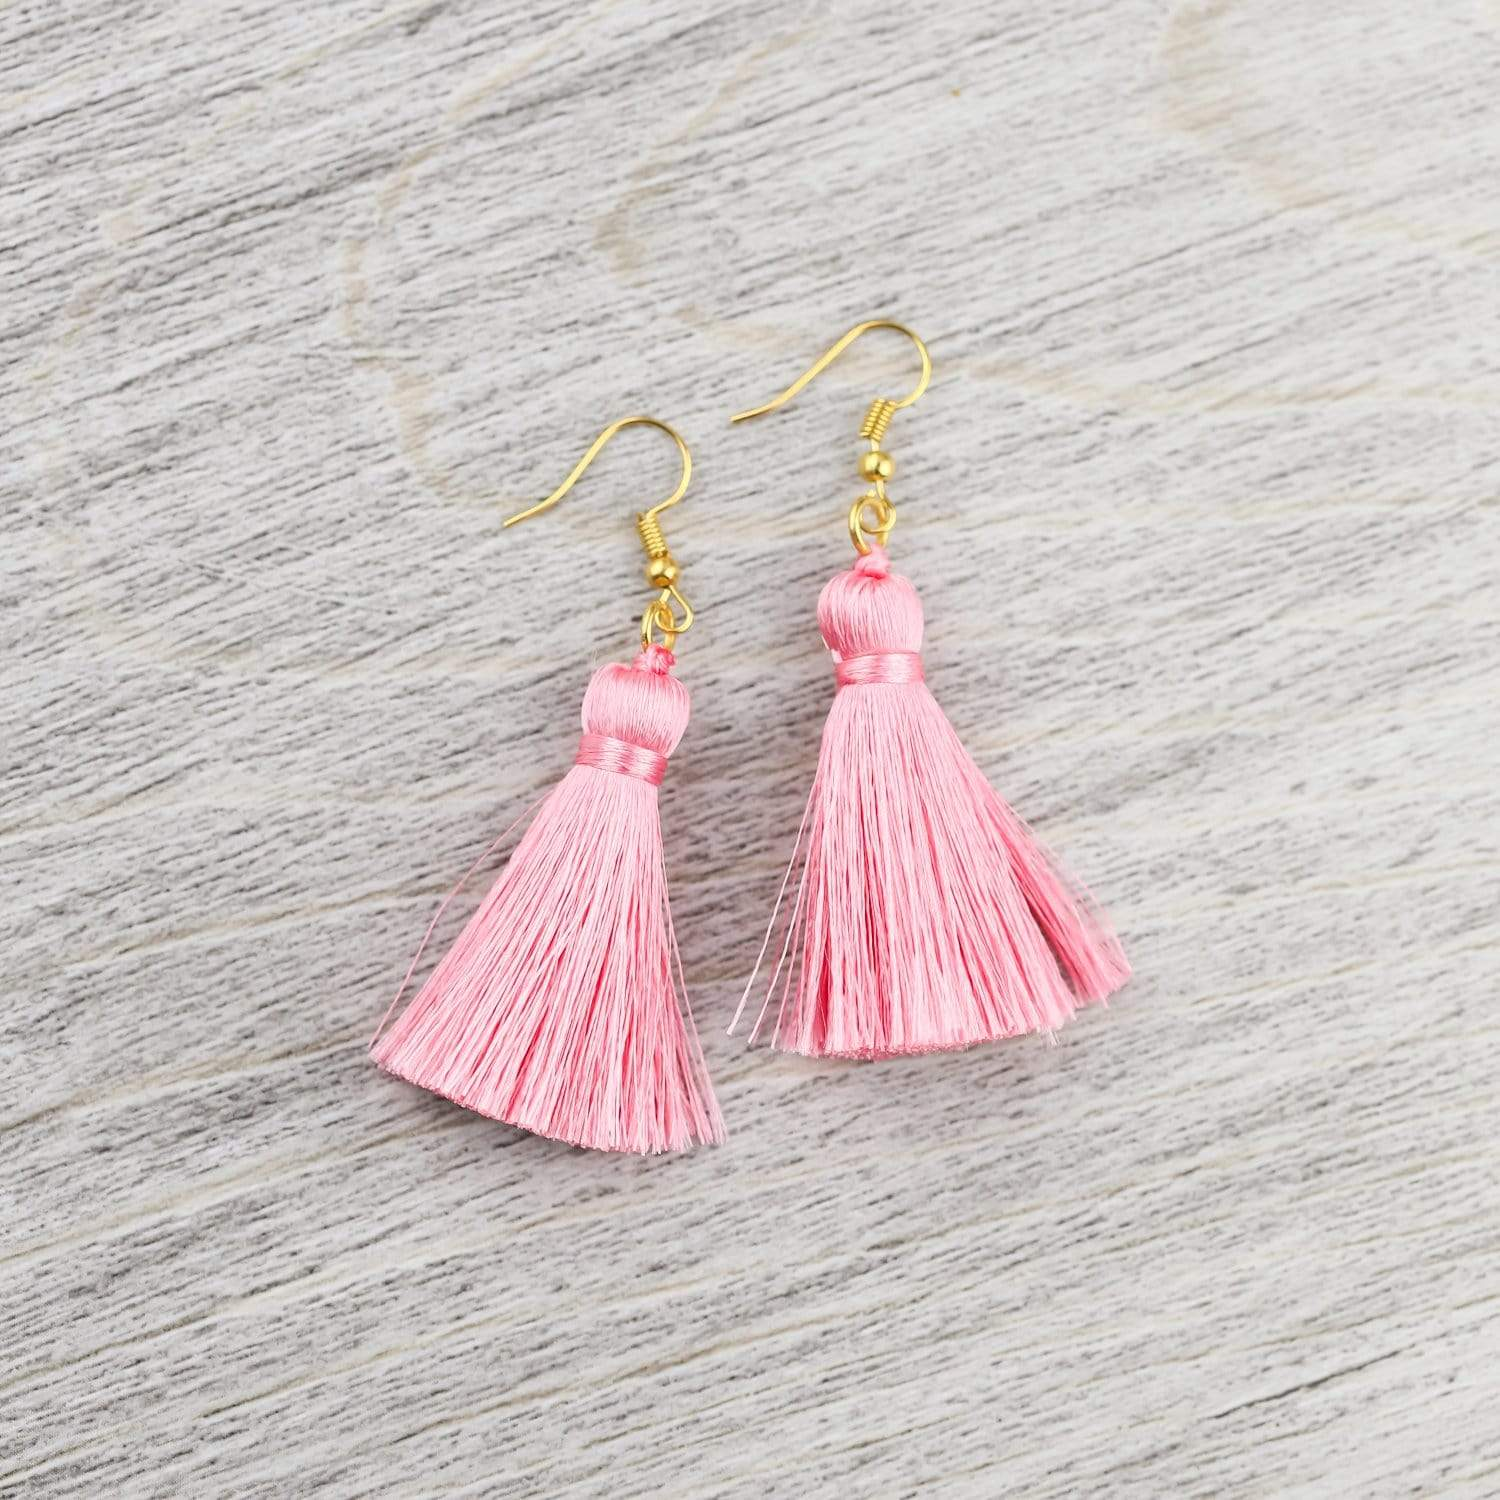 Earrings Colorful Tassel Earrings JE532